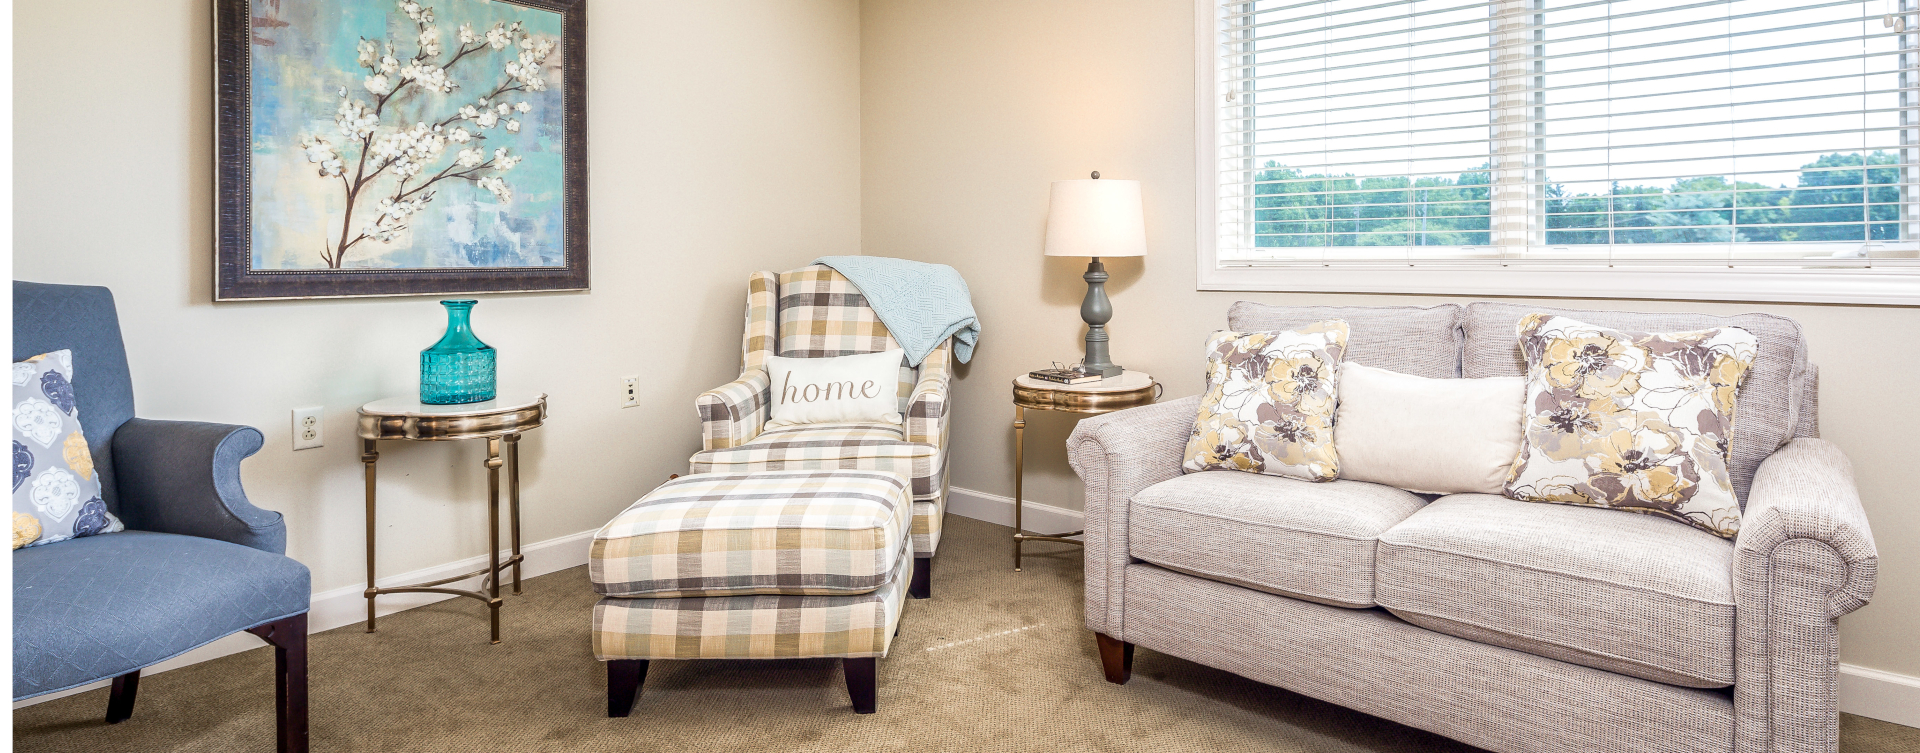 Enjoy senior friendly amenities, personal climate control and security in an apartment at Bickford of West Lansing